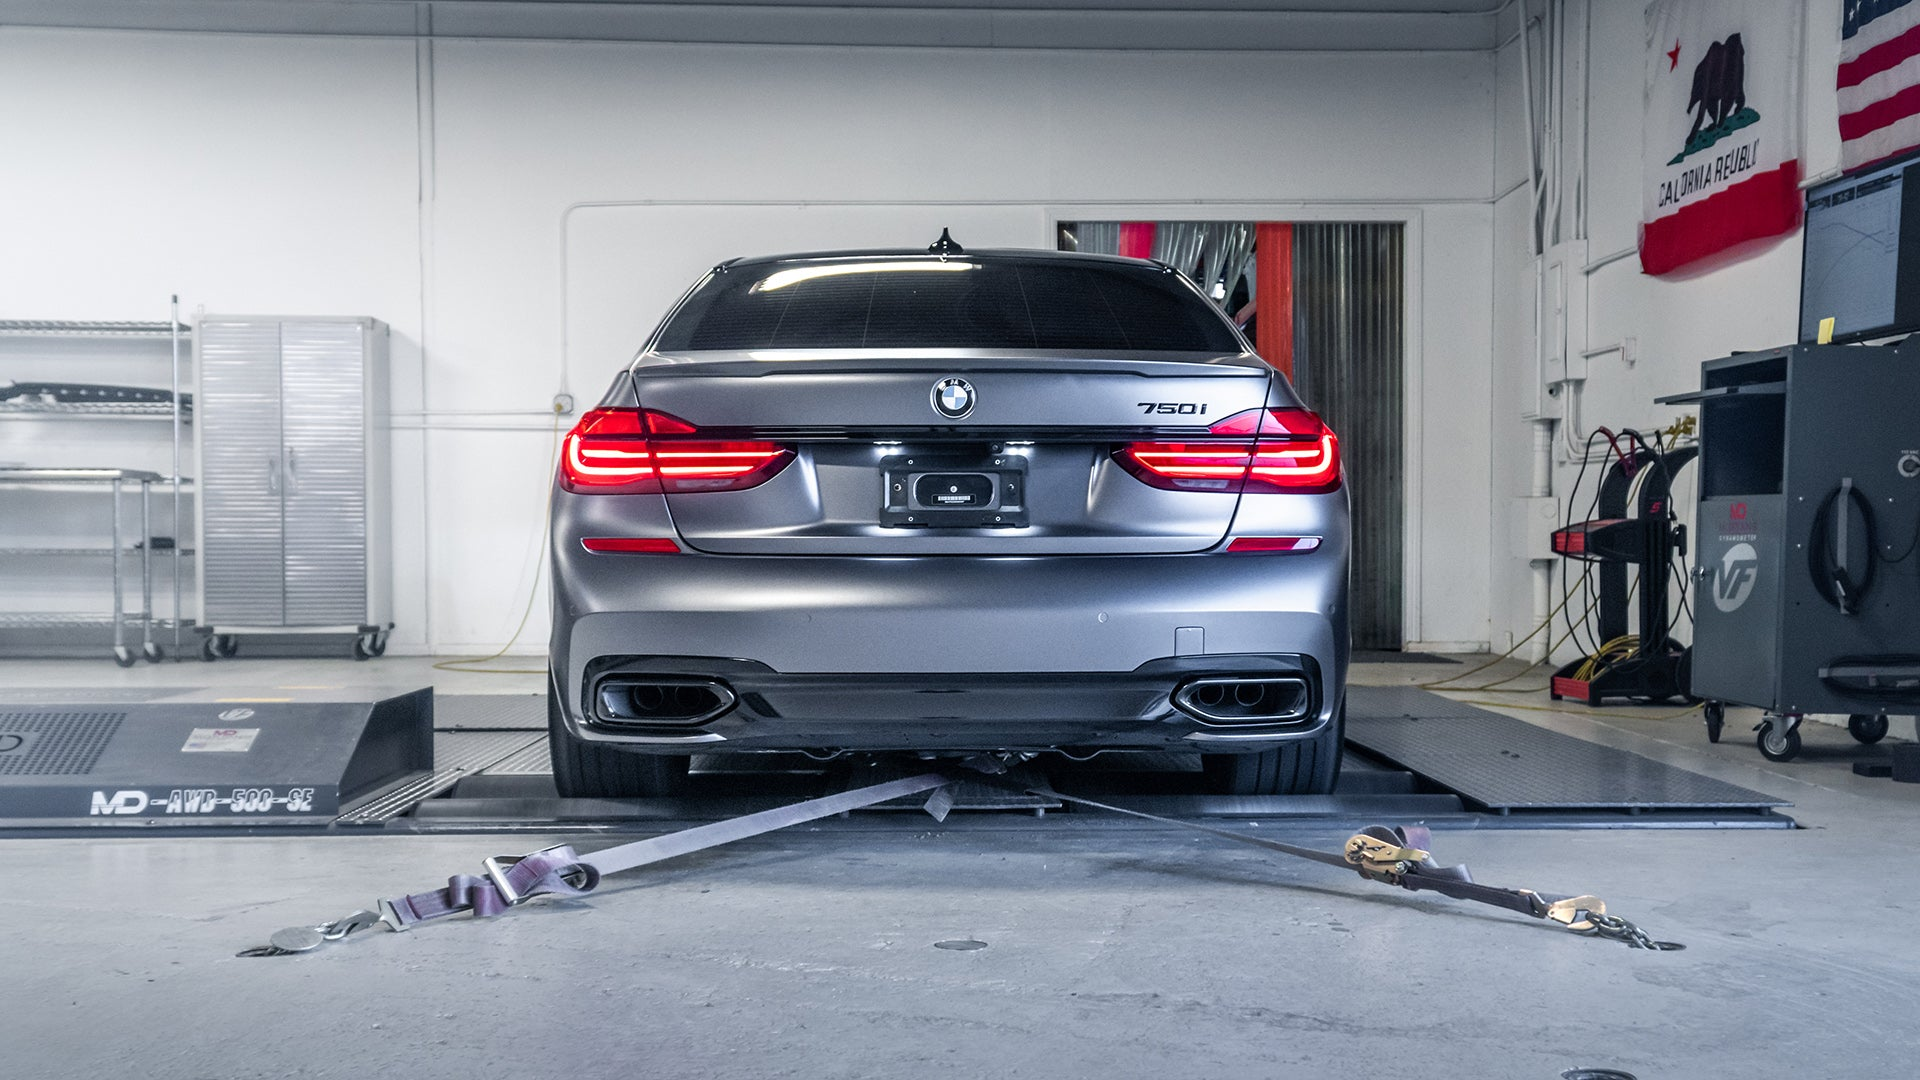 BMW 750i ECU Tuning Software G11/G12